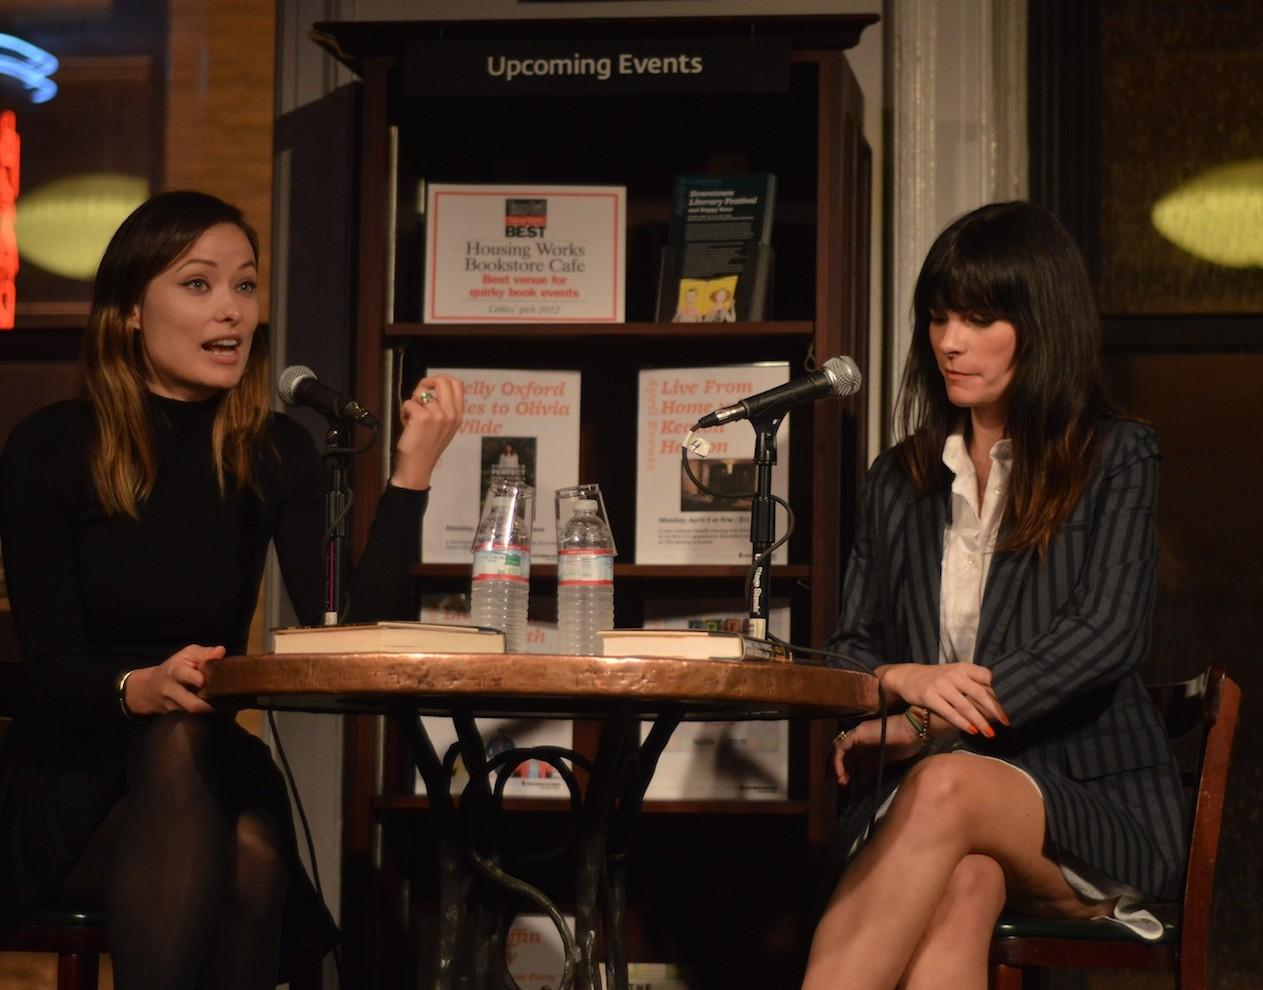 """Olivia Wilde, left, and Kelly Oxford, right, discuss Oxford's book """"Everything is Perfect When You're a Liar,"""" at Housing Works Bookstore Cafe on April 1. (Ian McKenna/The Observer)"""